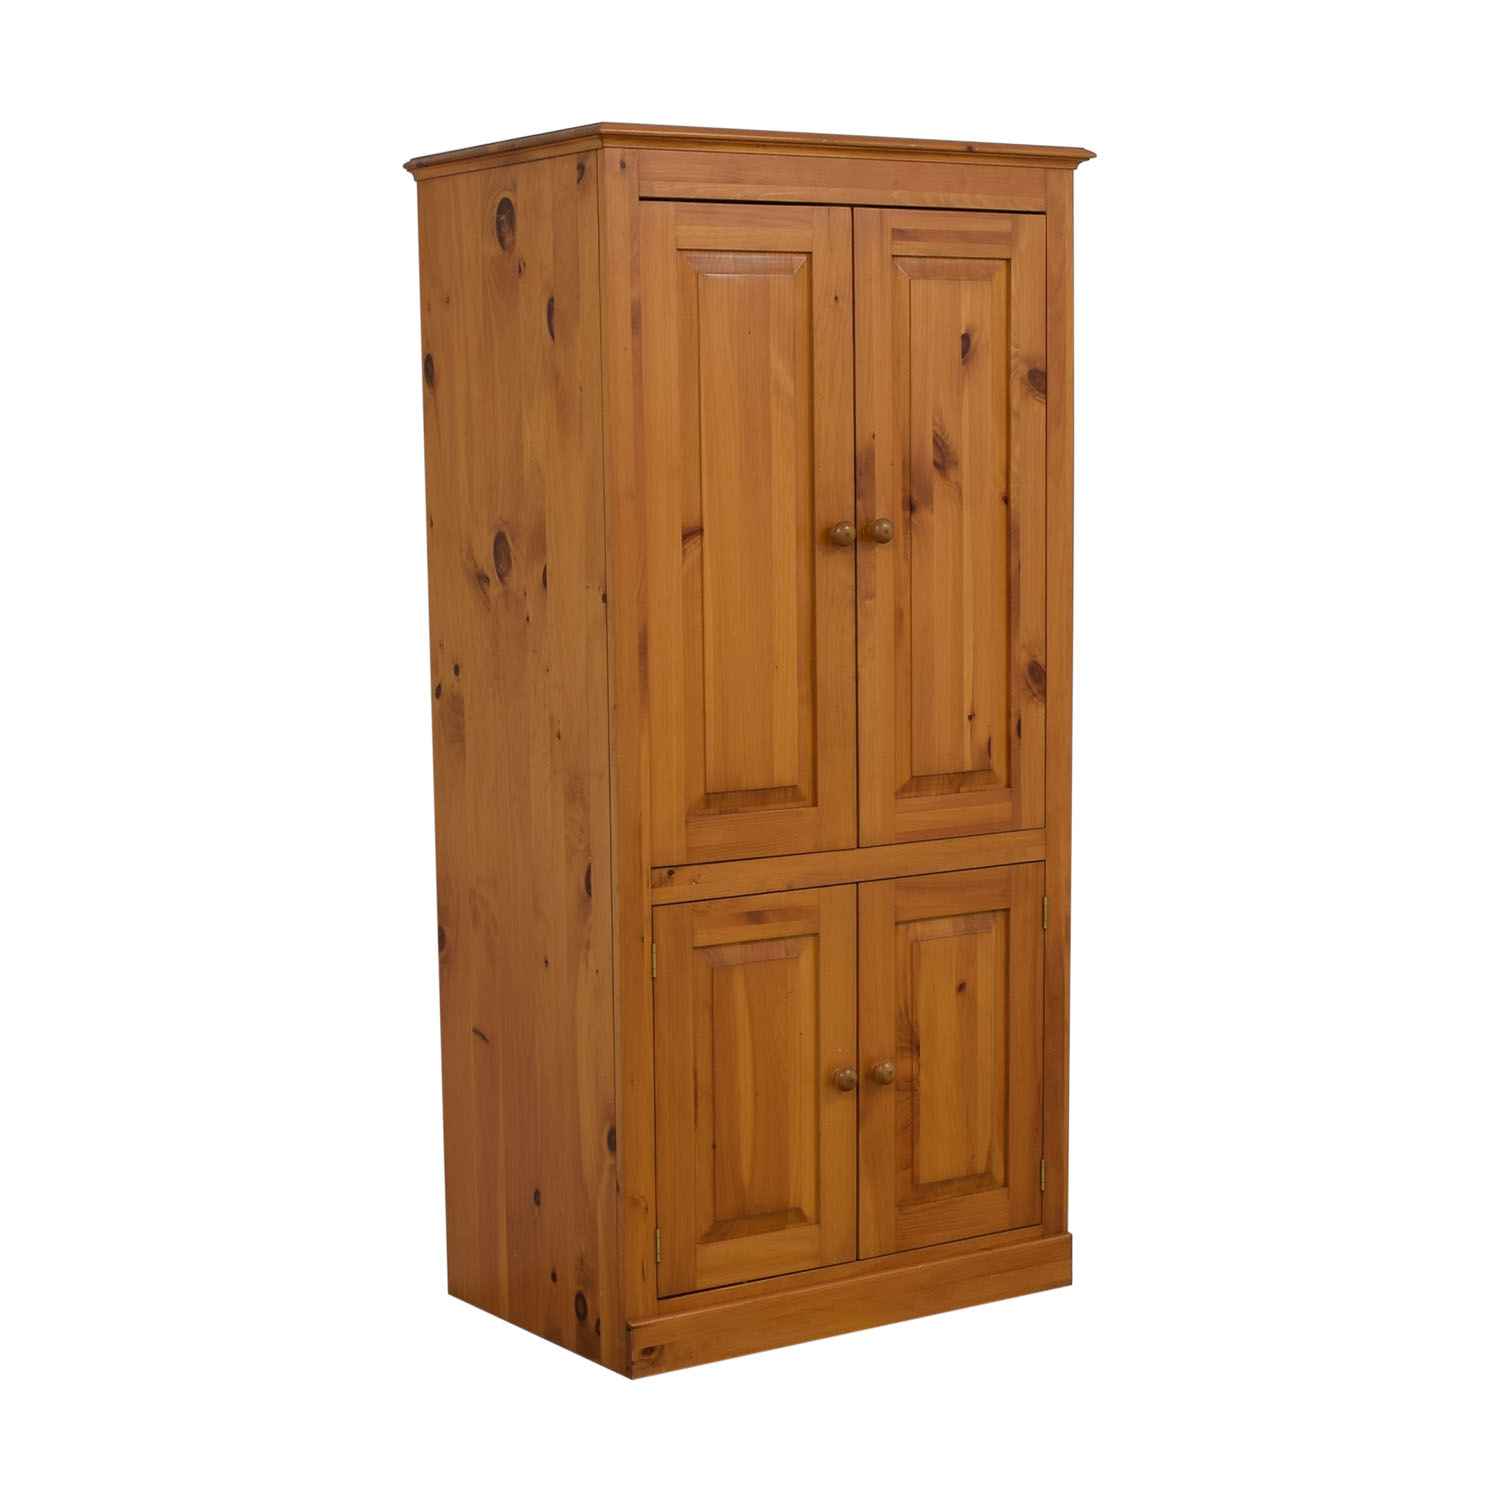 Four Cabinet Armoire price